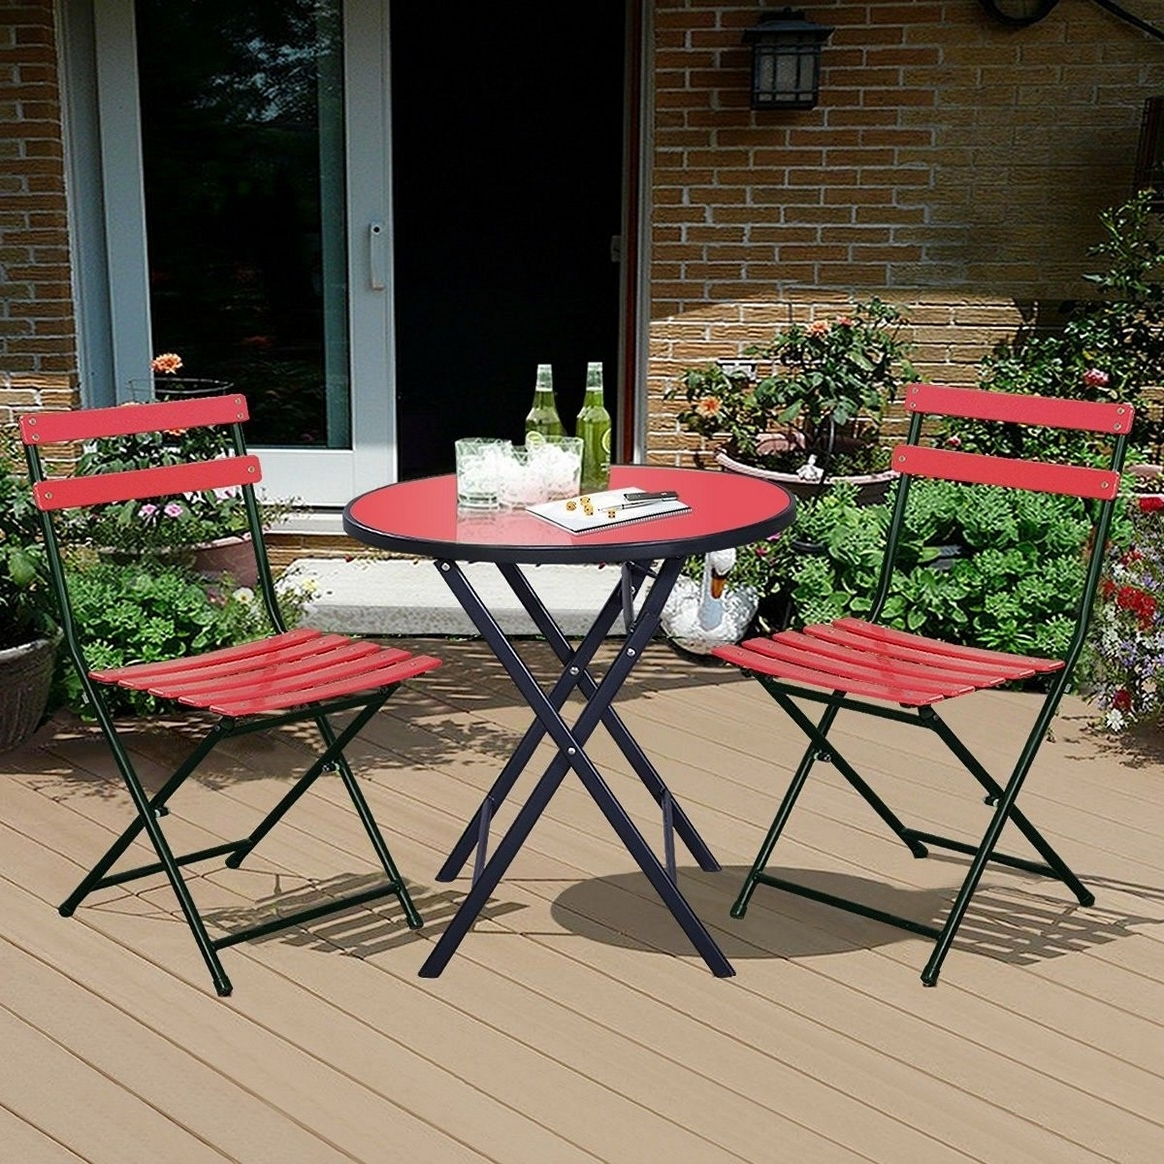 Patio Conversation Sets Under 200 Pertaining To Best And Newest Patio Furniture Sets Under 200 Dollars • Patio Ideas (View 7 of 15)